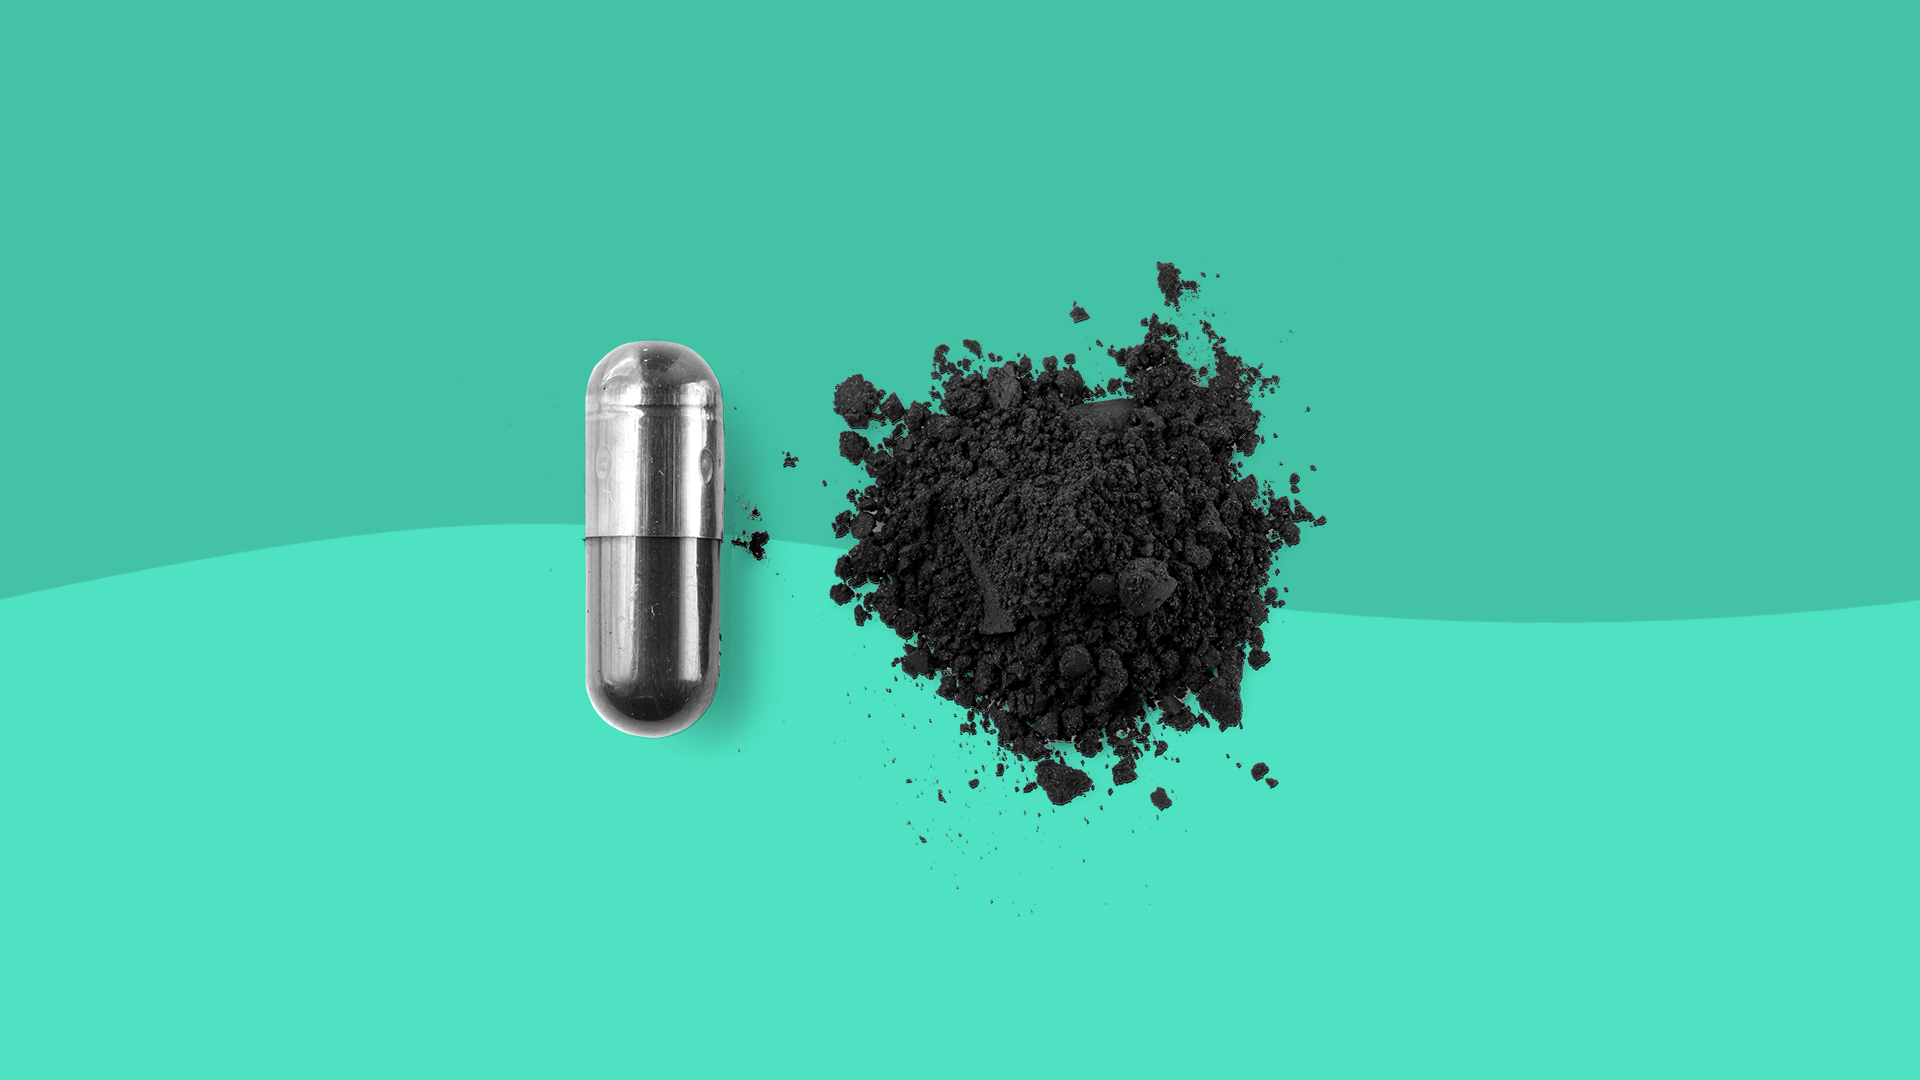 Activated charcoal benefits and how to use the product safely